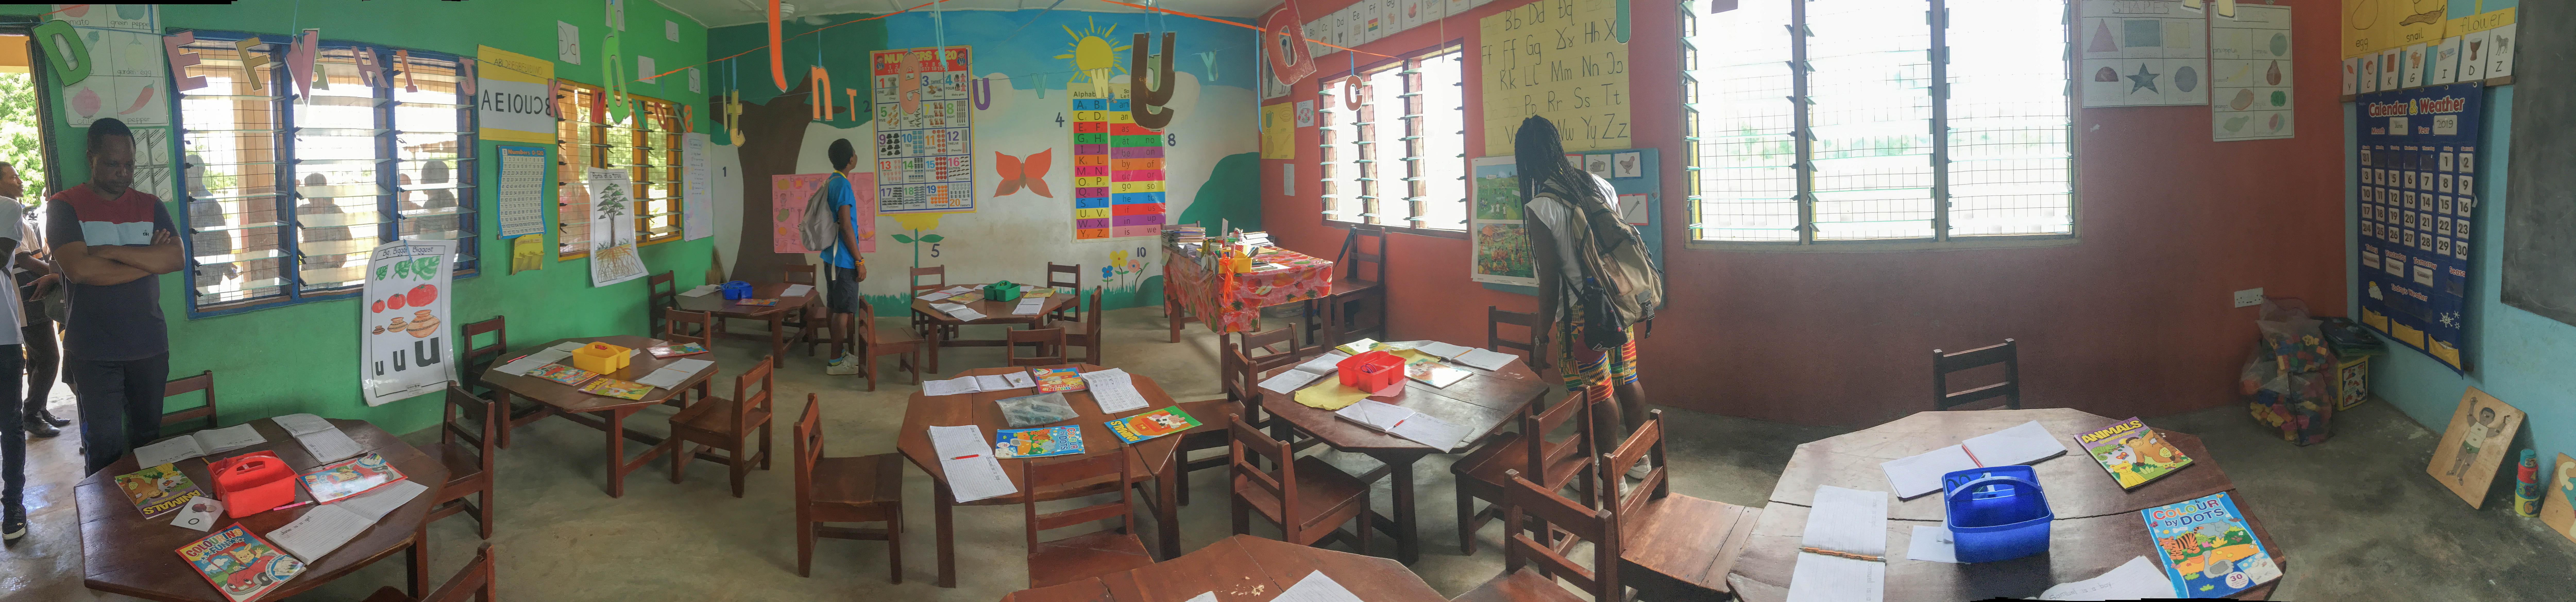 One of two kindergarten classrooms at the school.